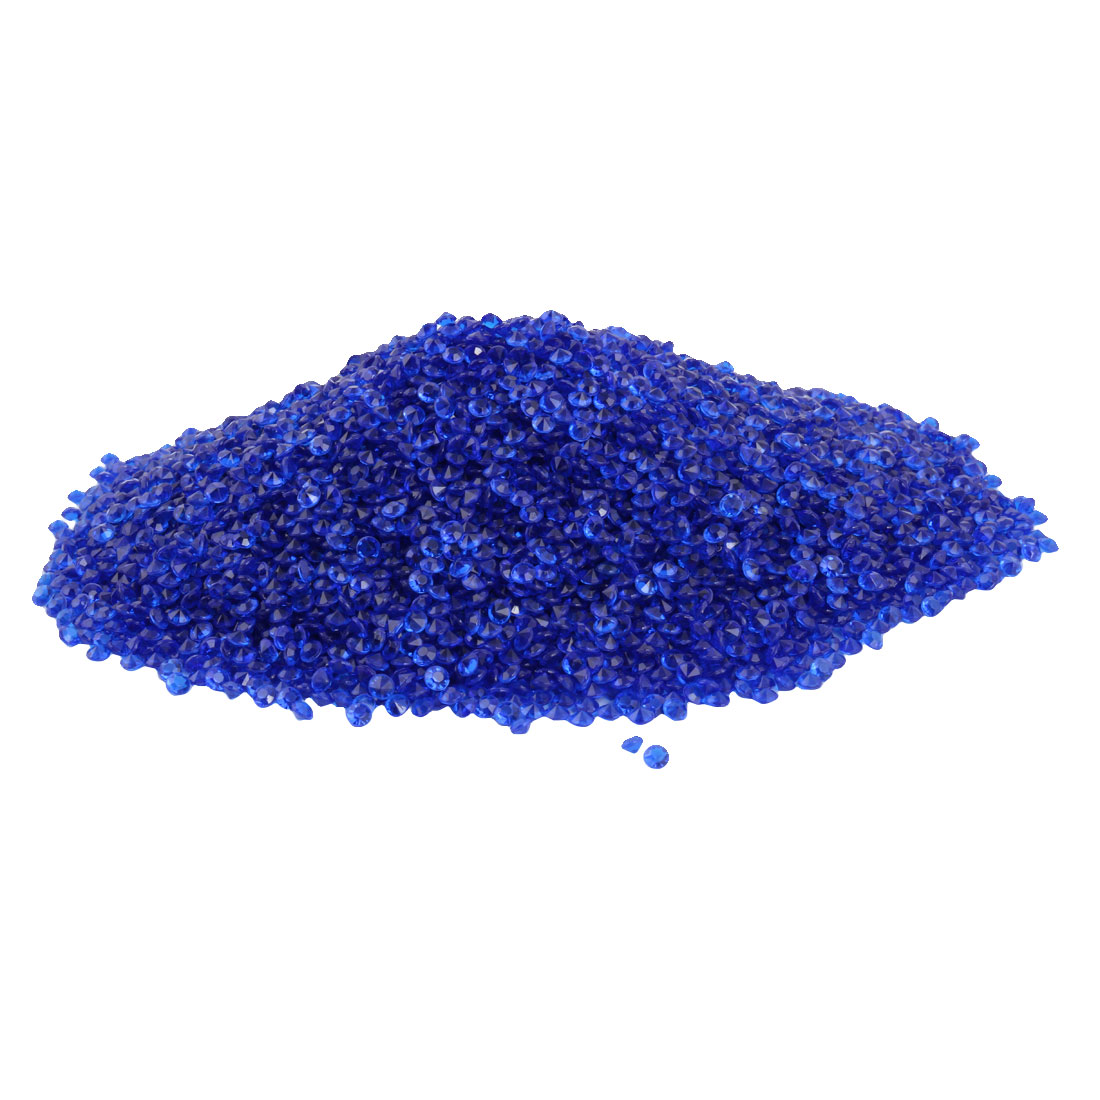 Plastic Crystal Confetti Wedding Party Decor Dark Blue 4.5mm Diameter 10000 Pcs